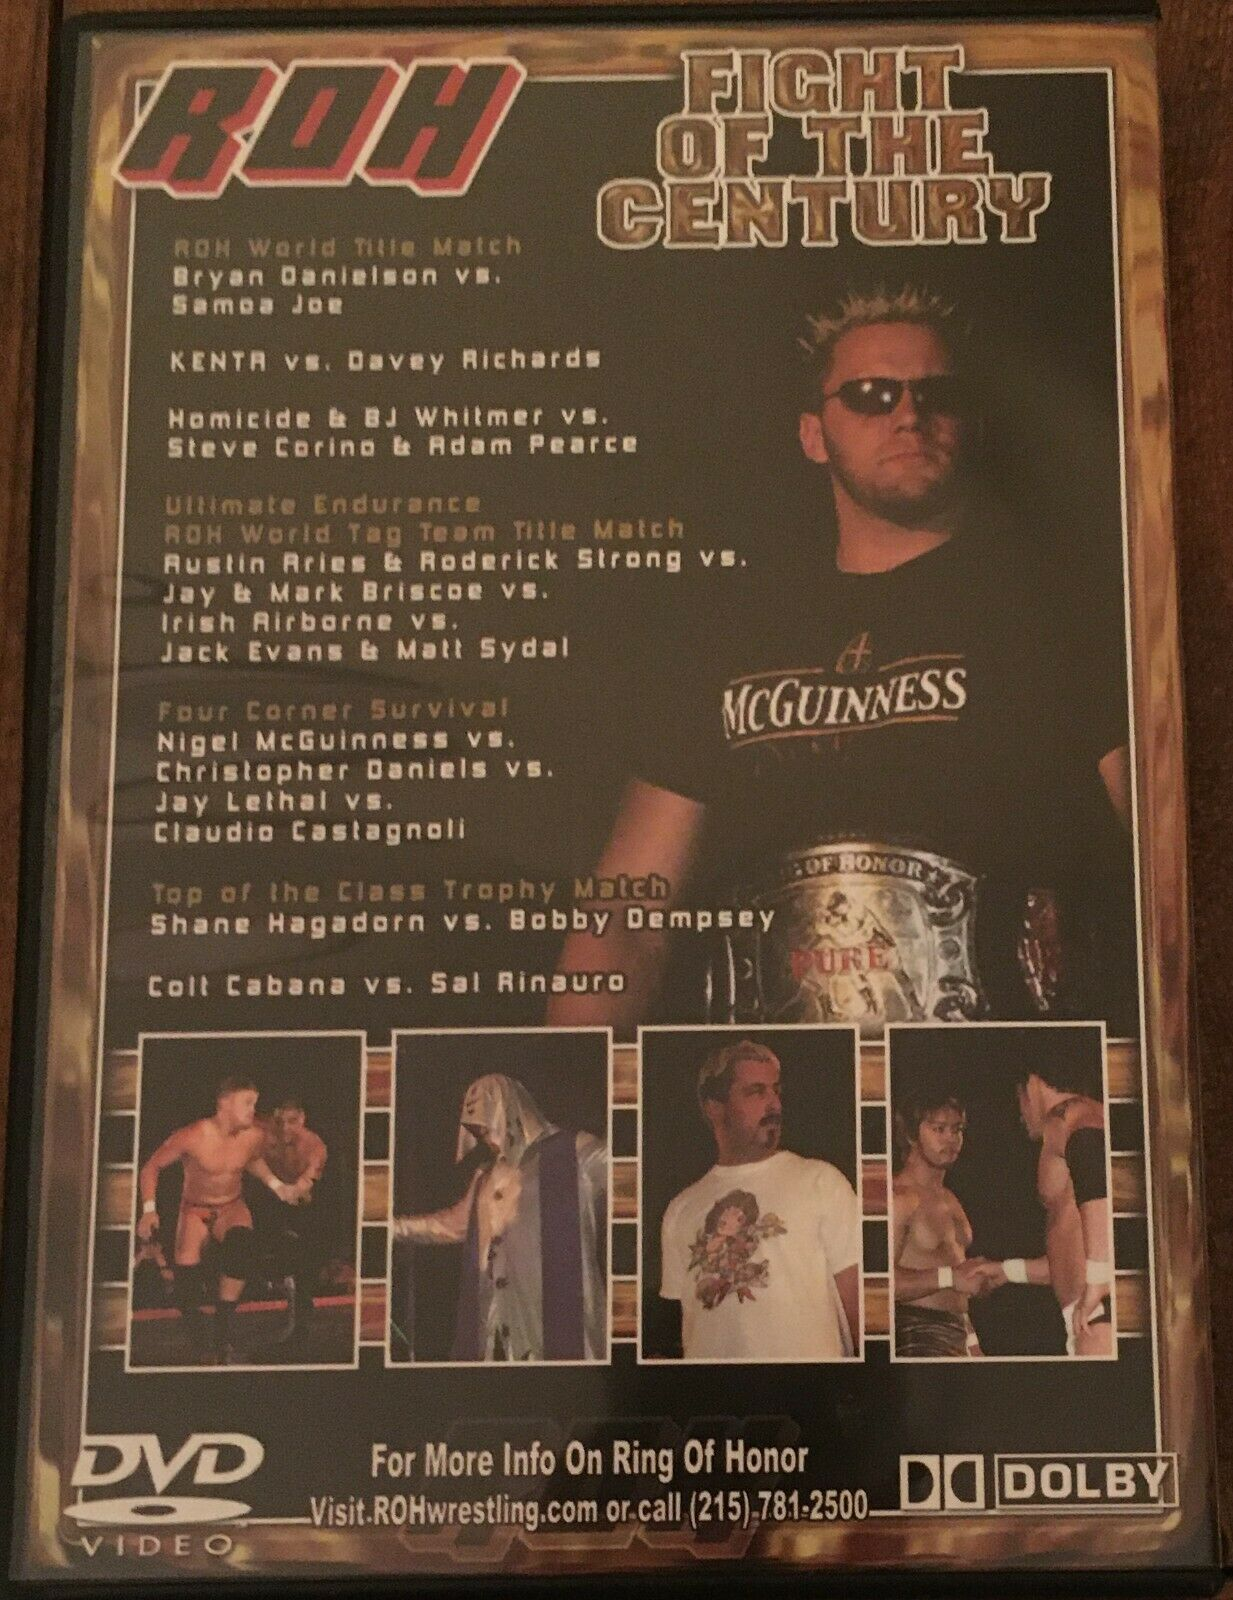 ROH Fight Of The Century 2006 DVD Ring Of Honor WWE AEW NXT TNA PWG ECW WCW - $23.75